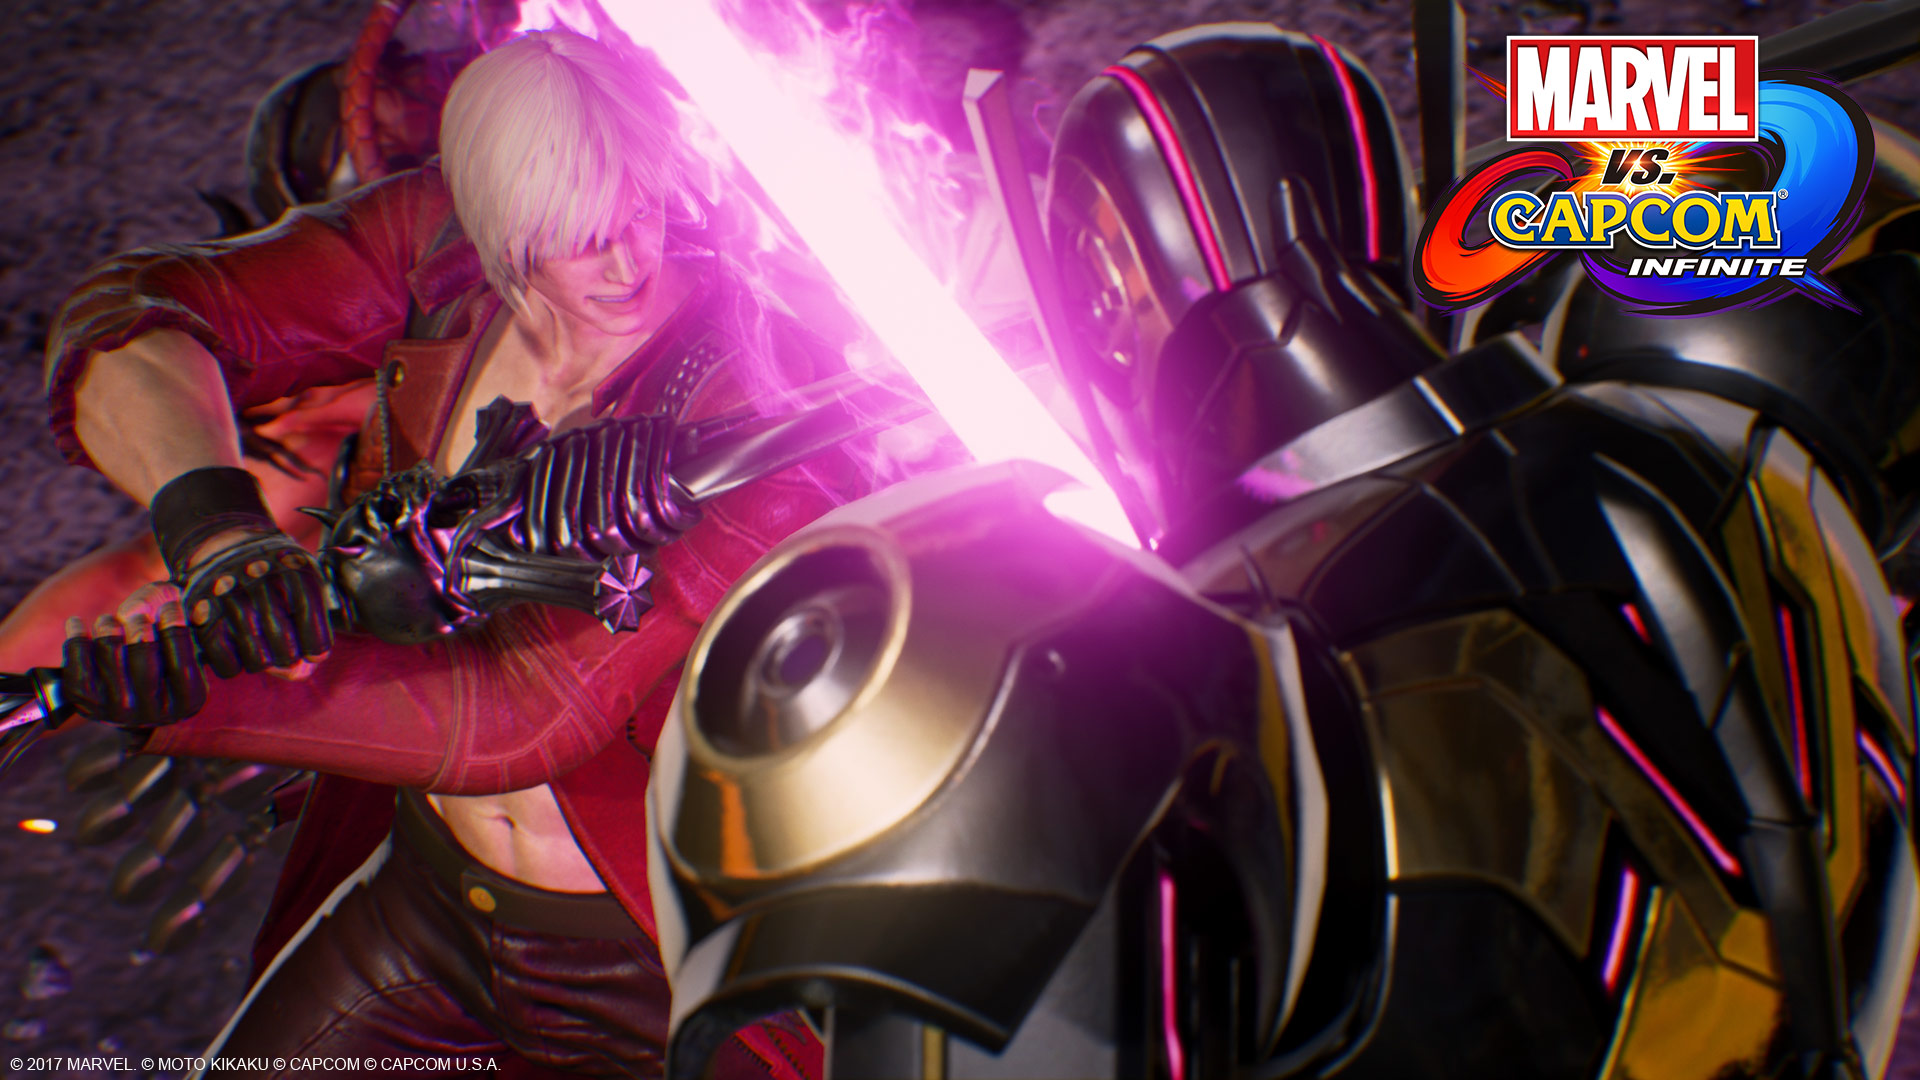 Marvel vs. Capcom: Infinite cover art and new character images from E3 2017 8 out of 26 image gallery